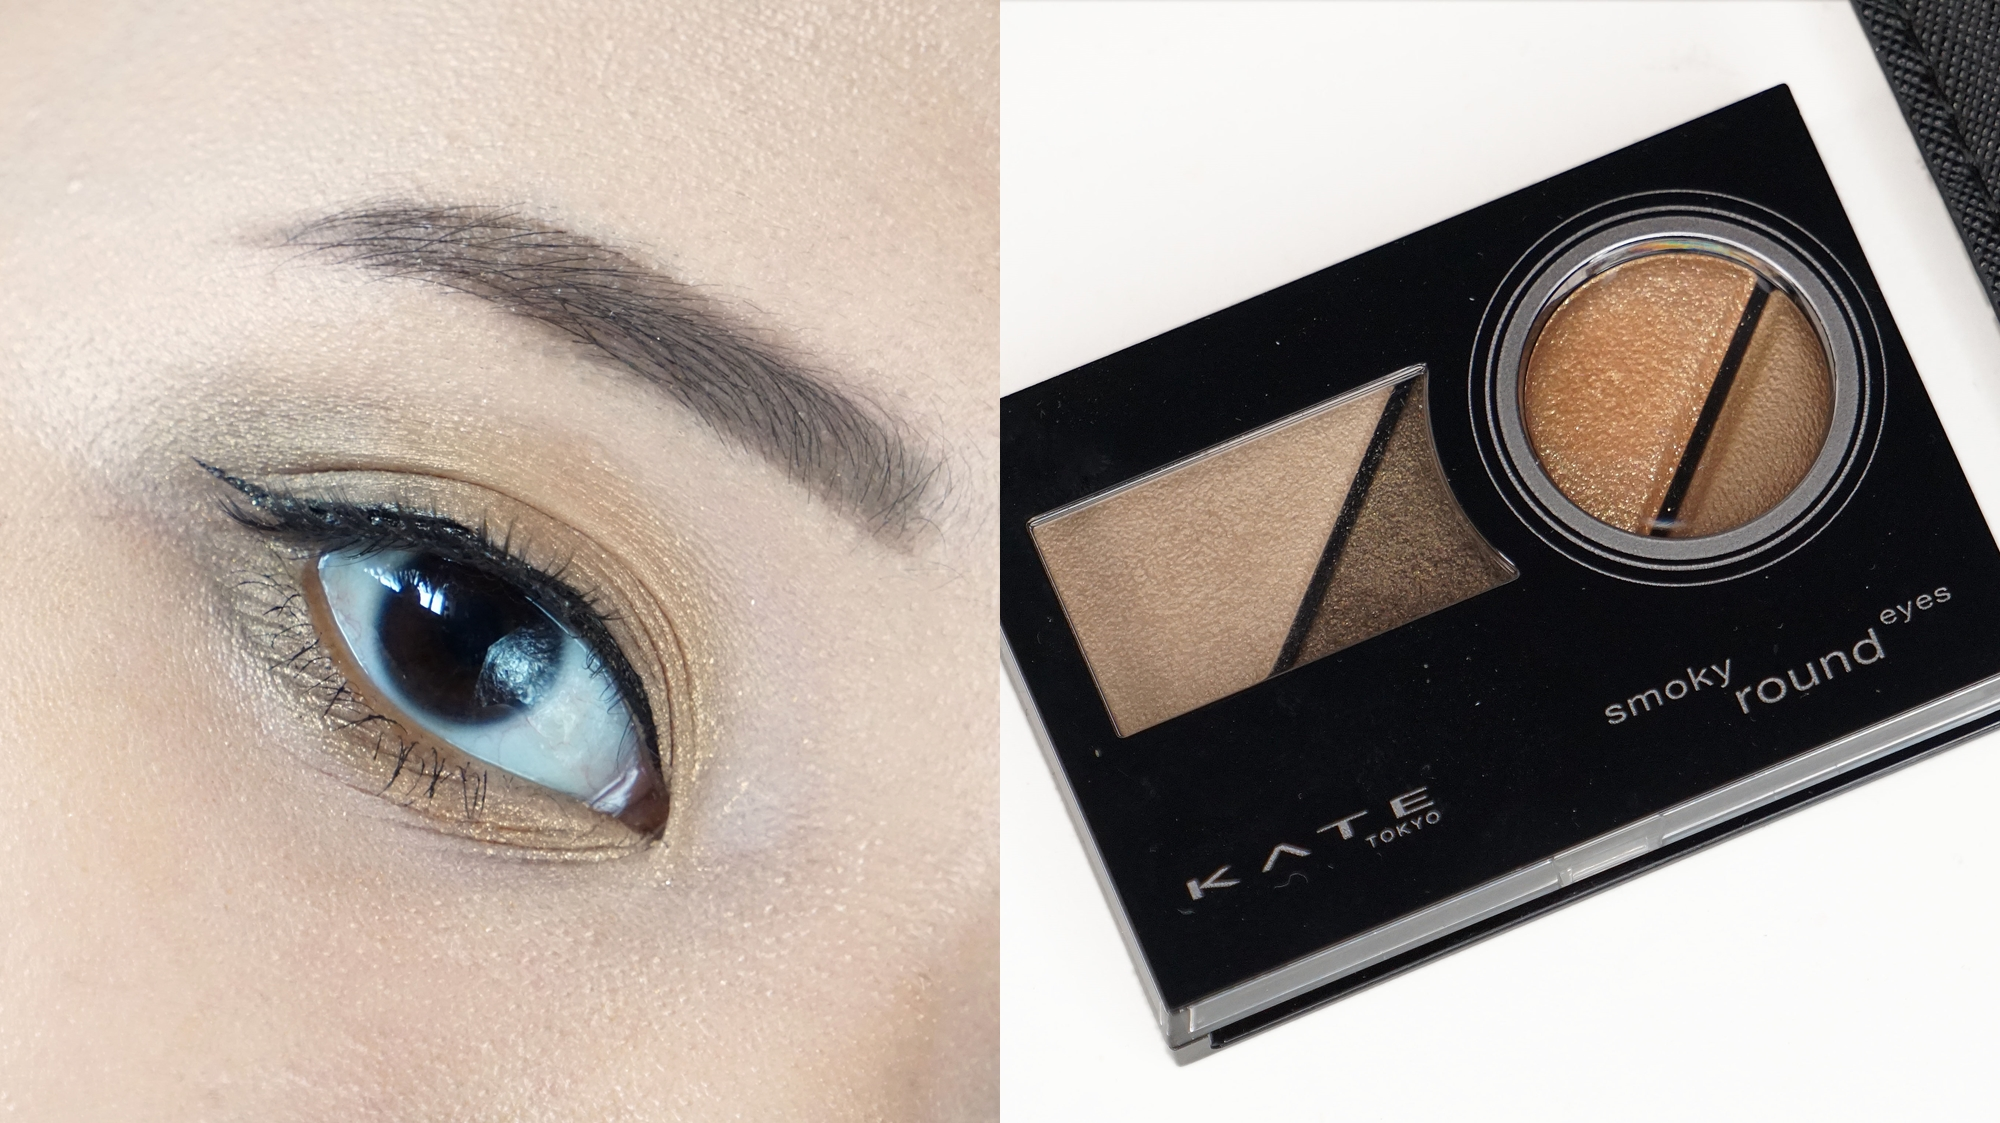 Kate Smoky Round Eyes Palette Review